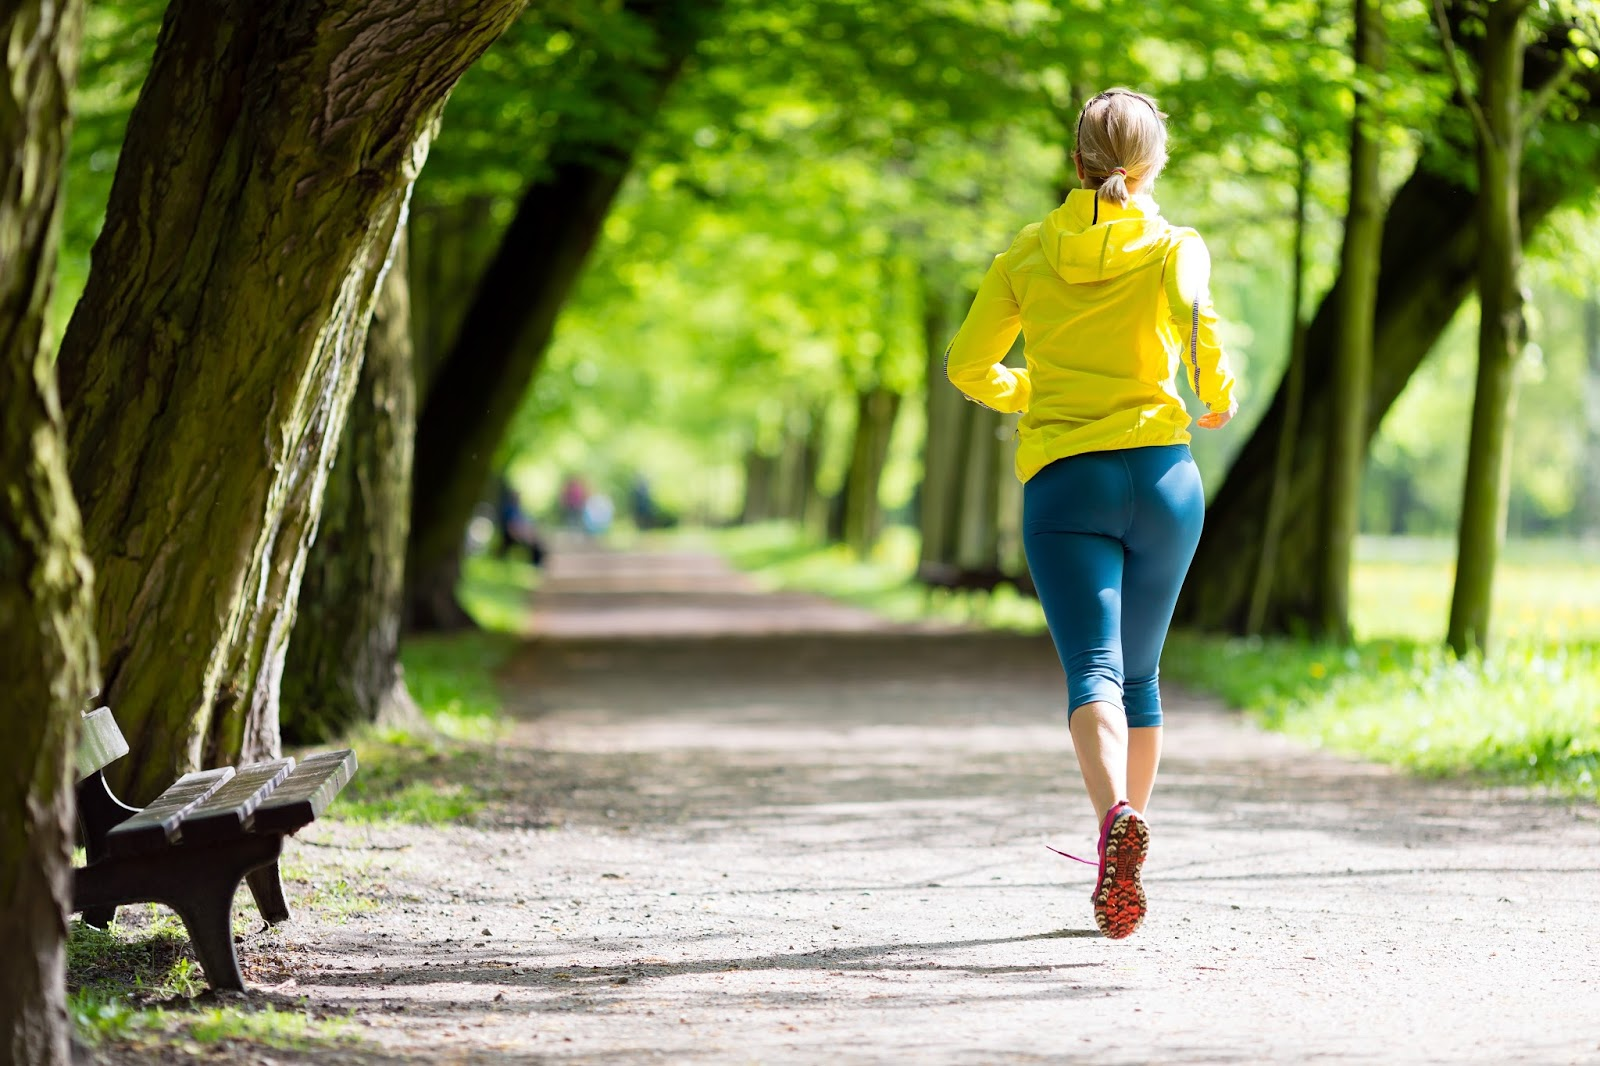 High-intensity activities such as running have additional advantages.